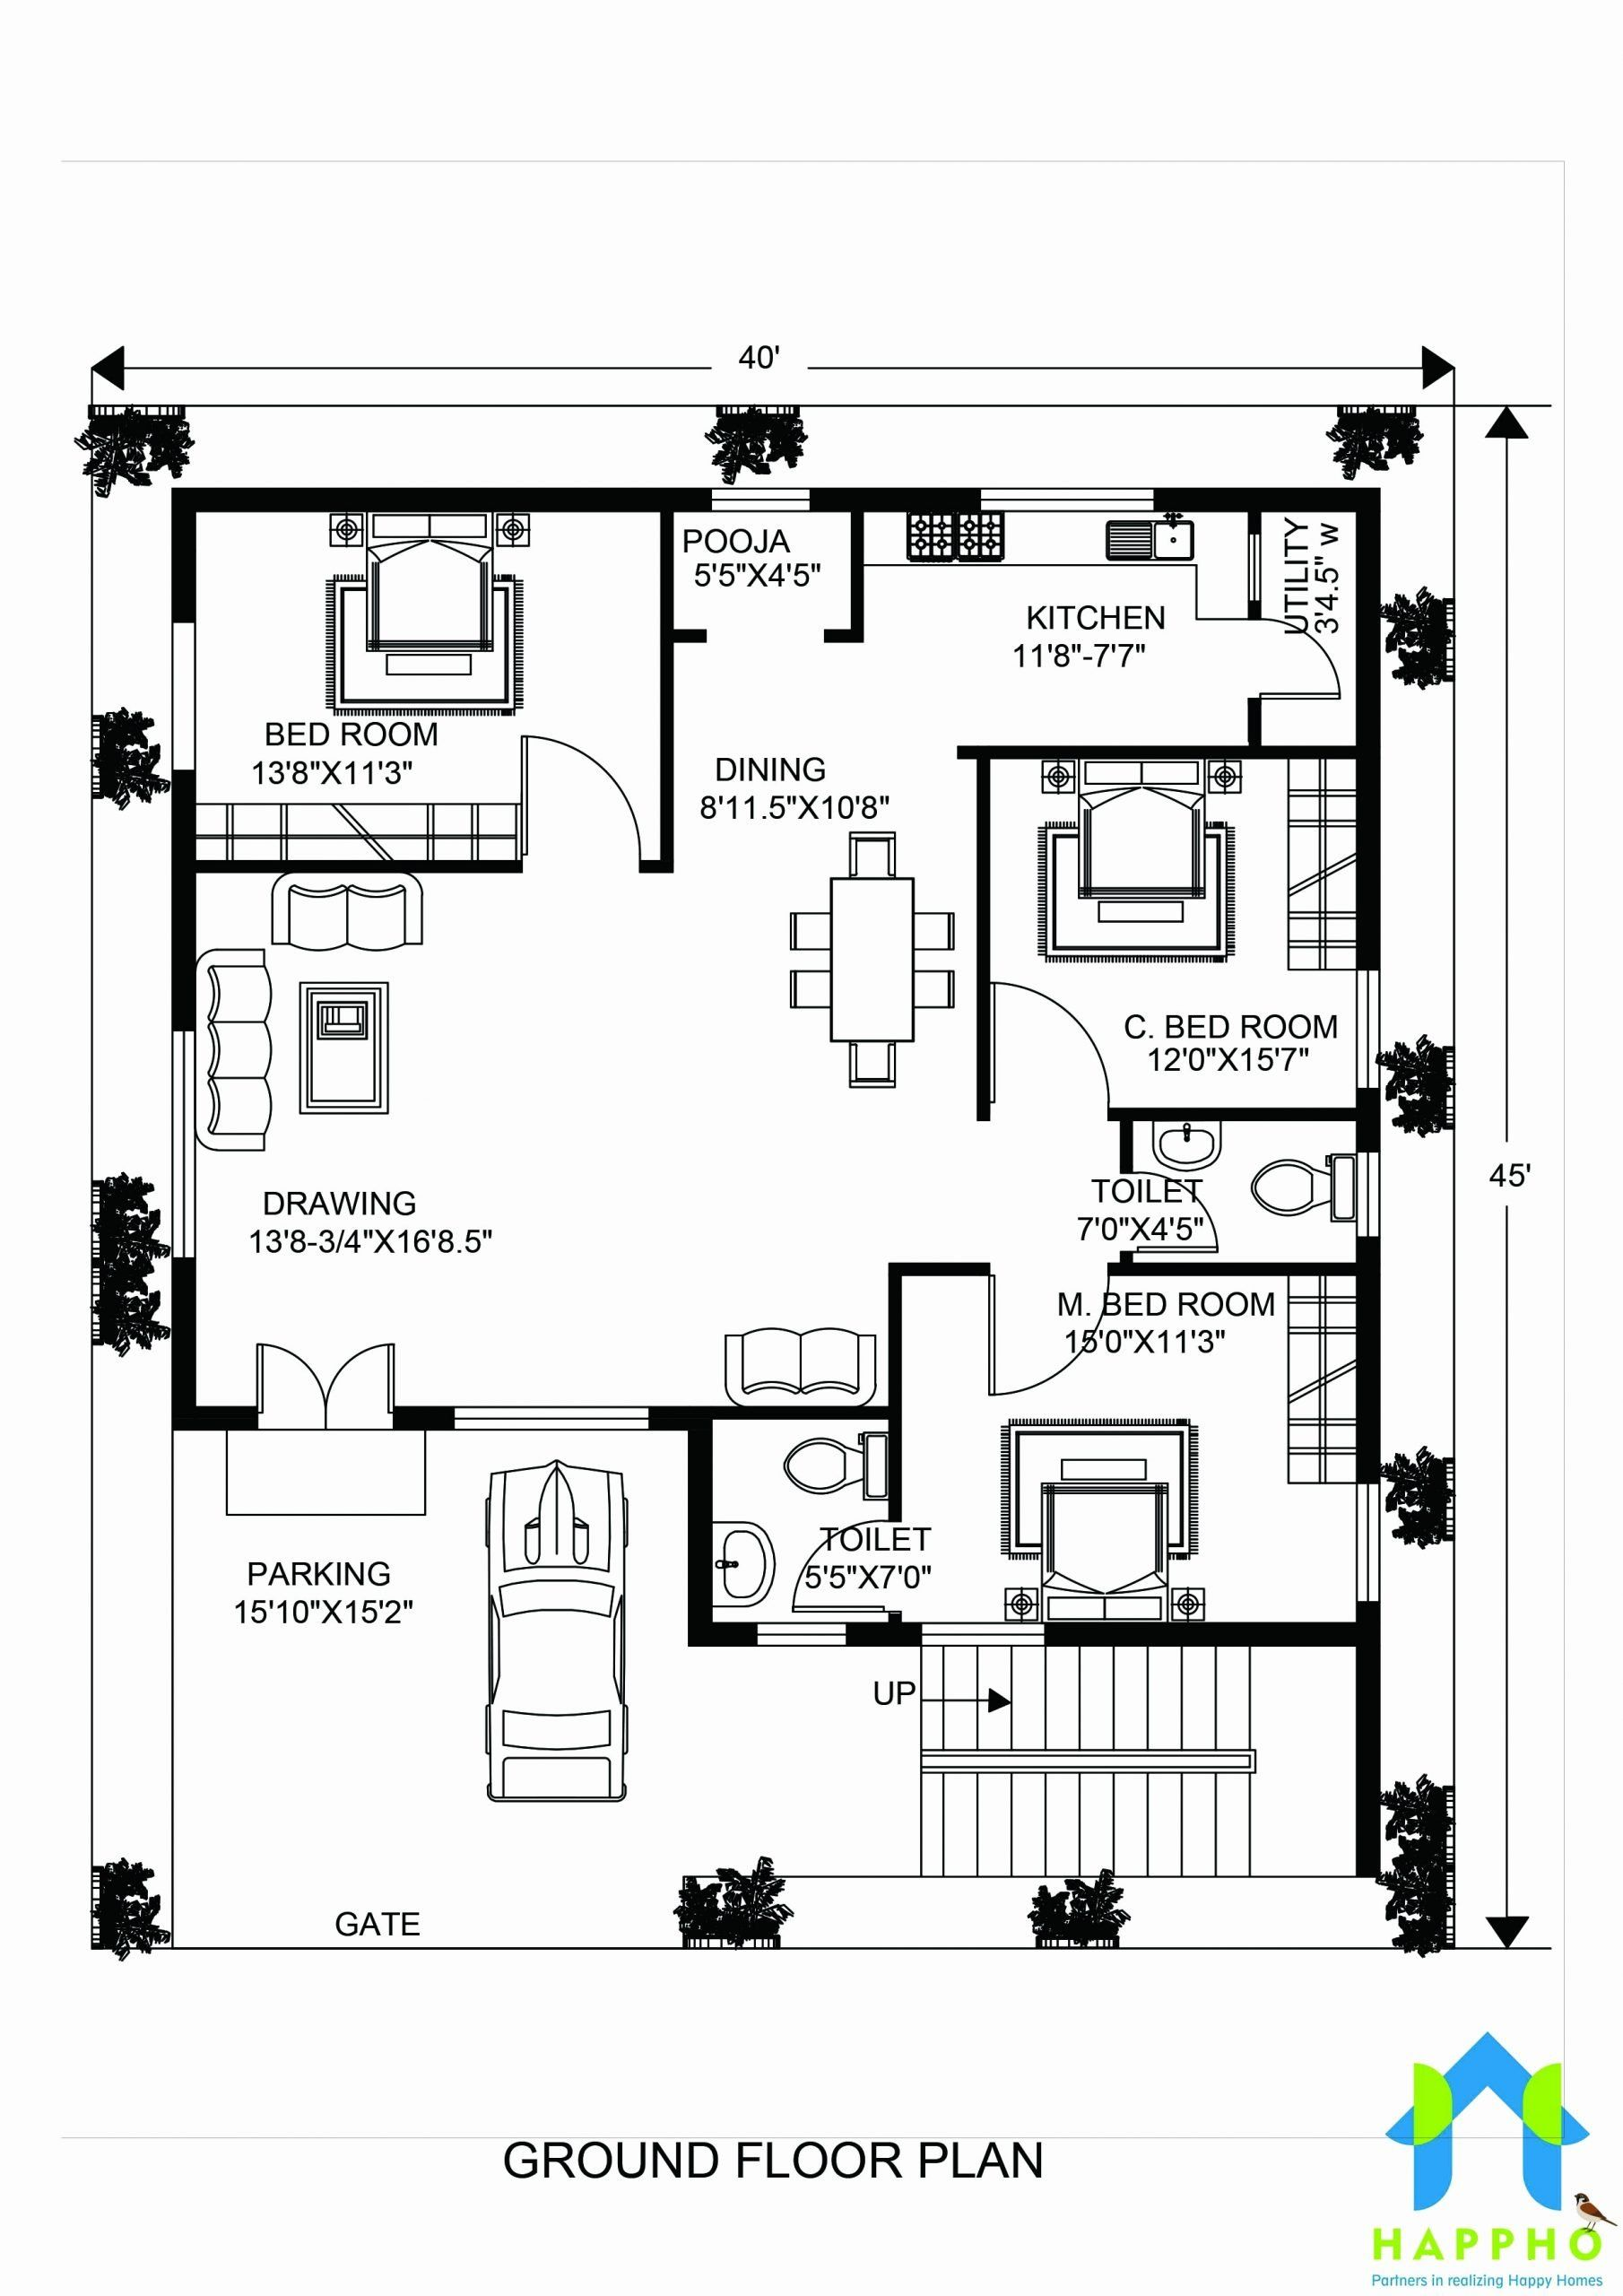 200 Square Foot House Plans Luxury Floor Plan For 40 X 45 Feet Plot Bungalow Style House Plans Square House Plans House Plans